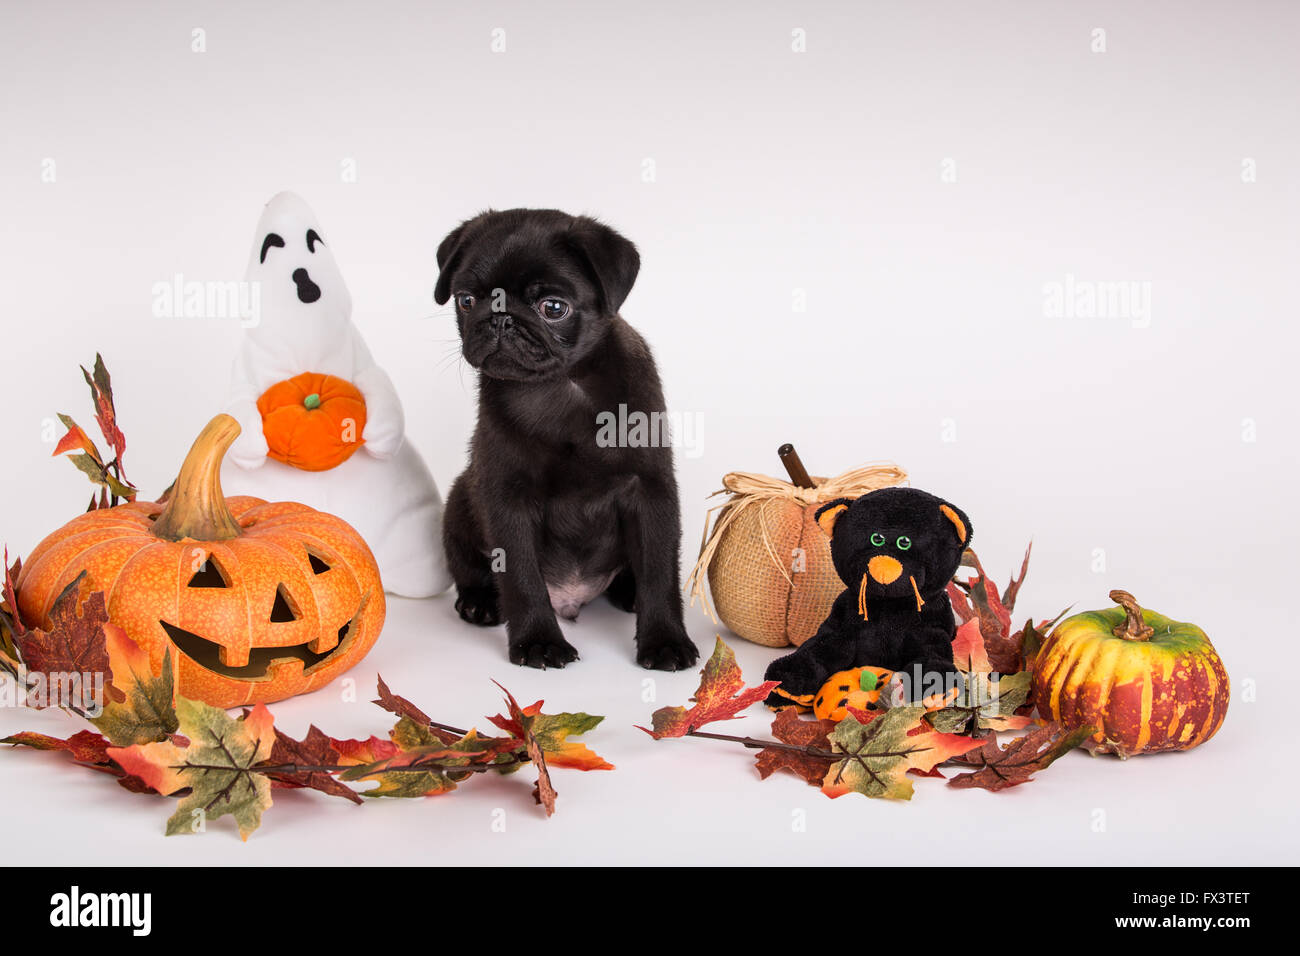 Fitzgerald, a 10 week old black Pug puppy surrounded by Halloween decorations in Issaquah, Washington, USA Stock Photo